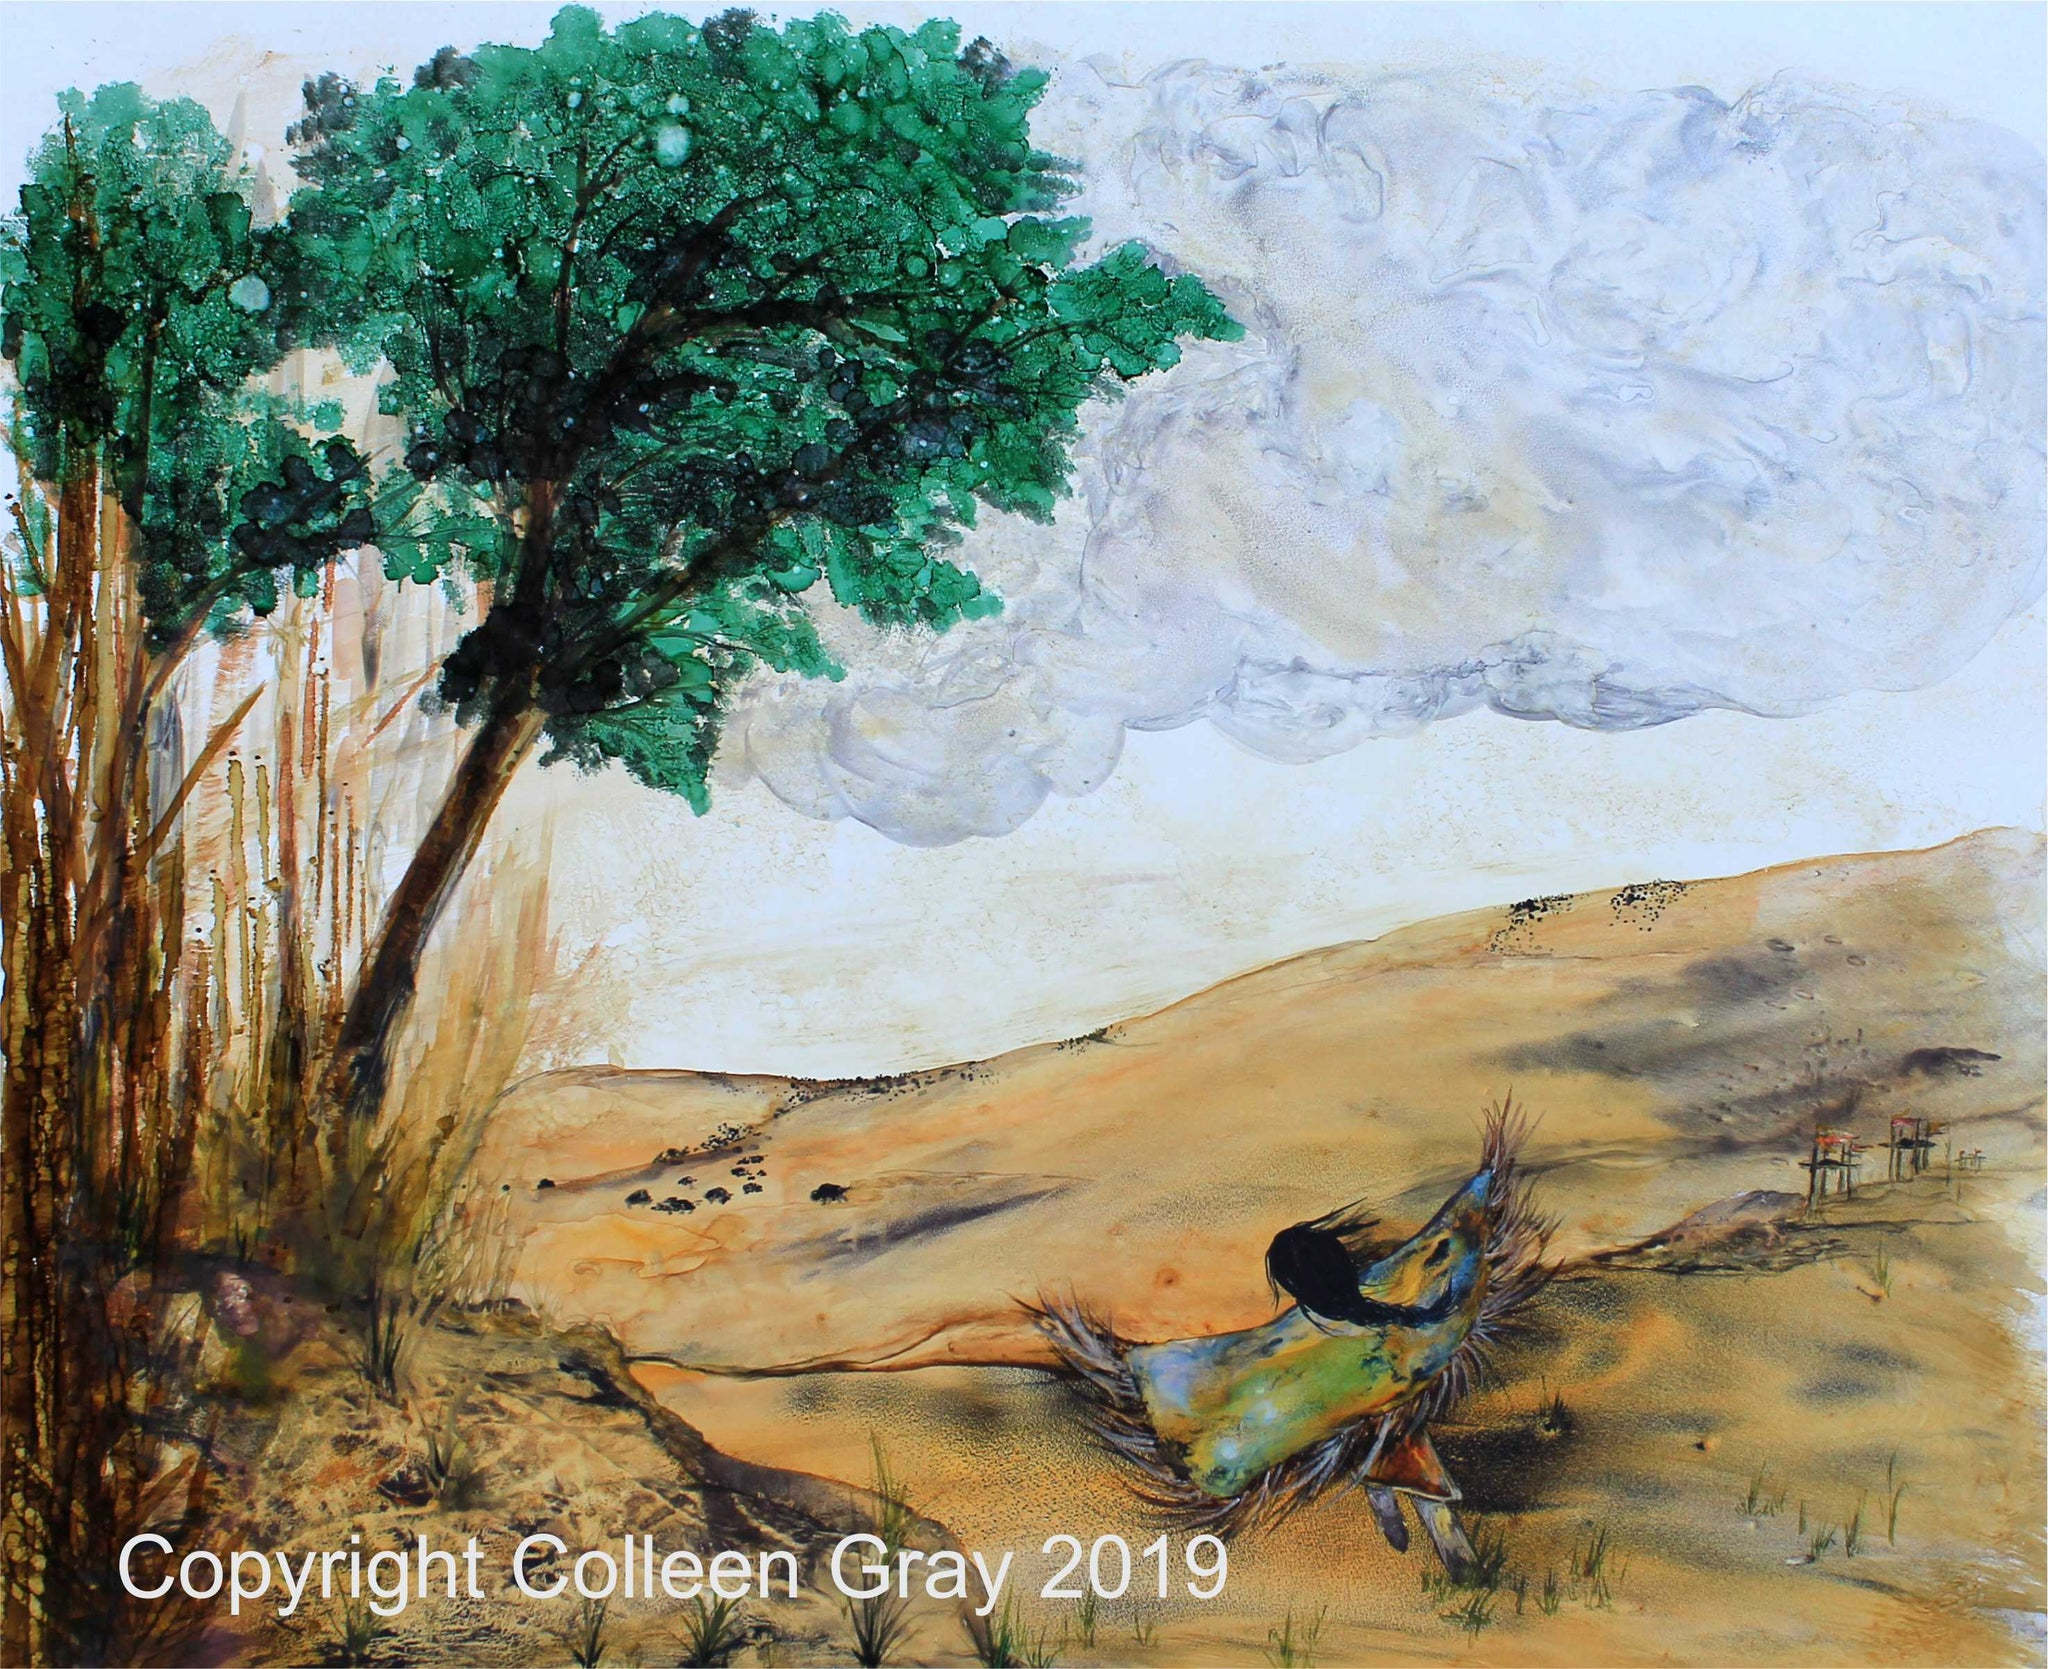 Image of Title: Dancing for the Earth Art Card  by Metis Artist Colleen Gray Indigenous Canadian Art Work. Landscape, green trees, brown earth, blue sky, woman outstretched arms.For sale at https://artforaidshop.ca